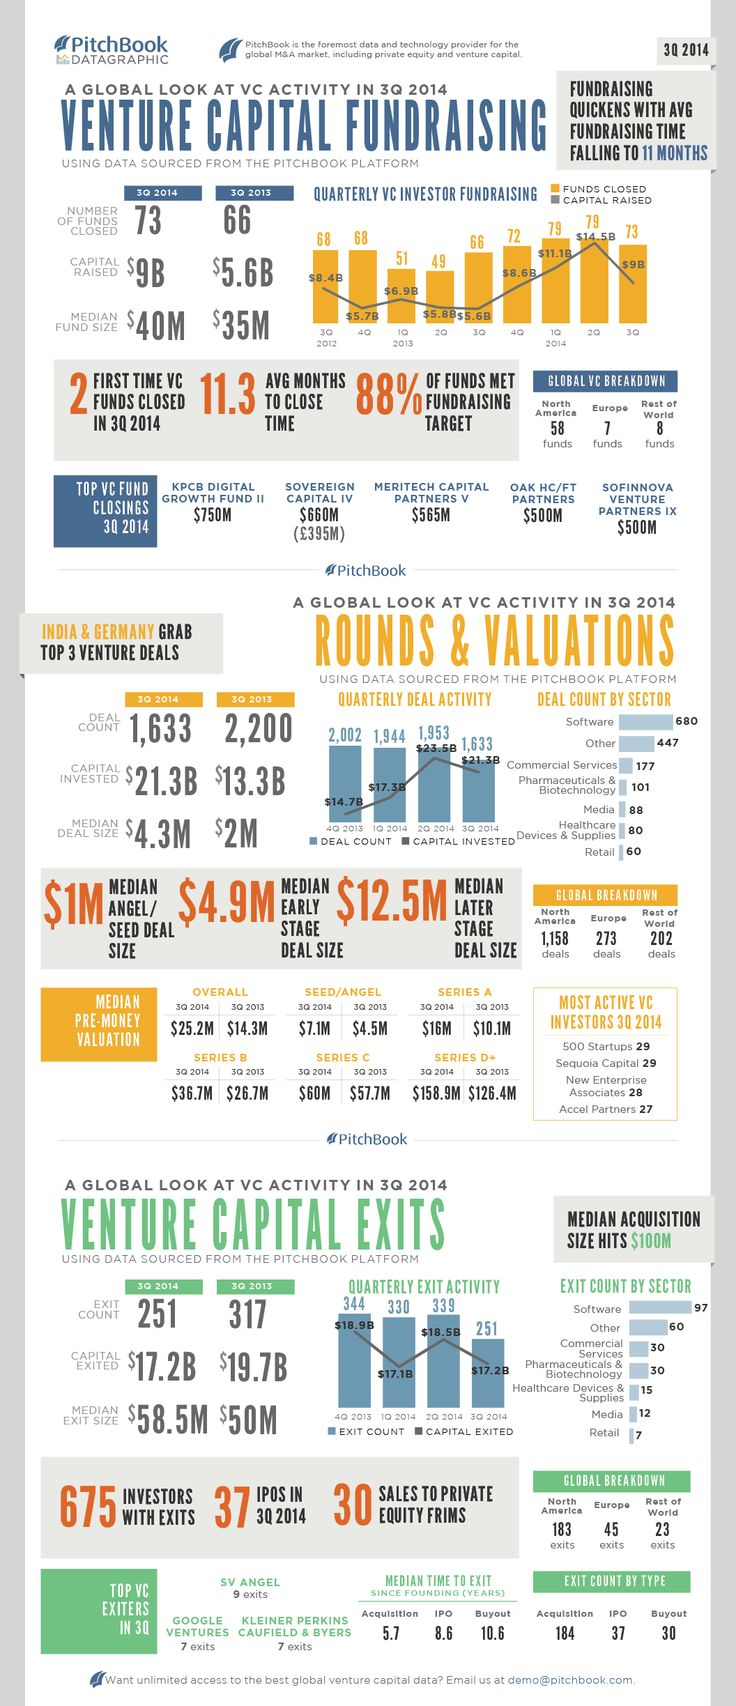 Venture Capital Fundraising (infographic from PitchBook platform)  Q3 2014 activity.